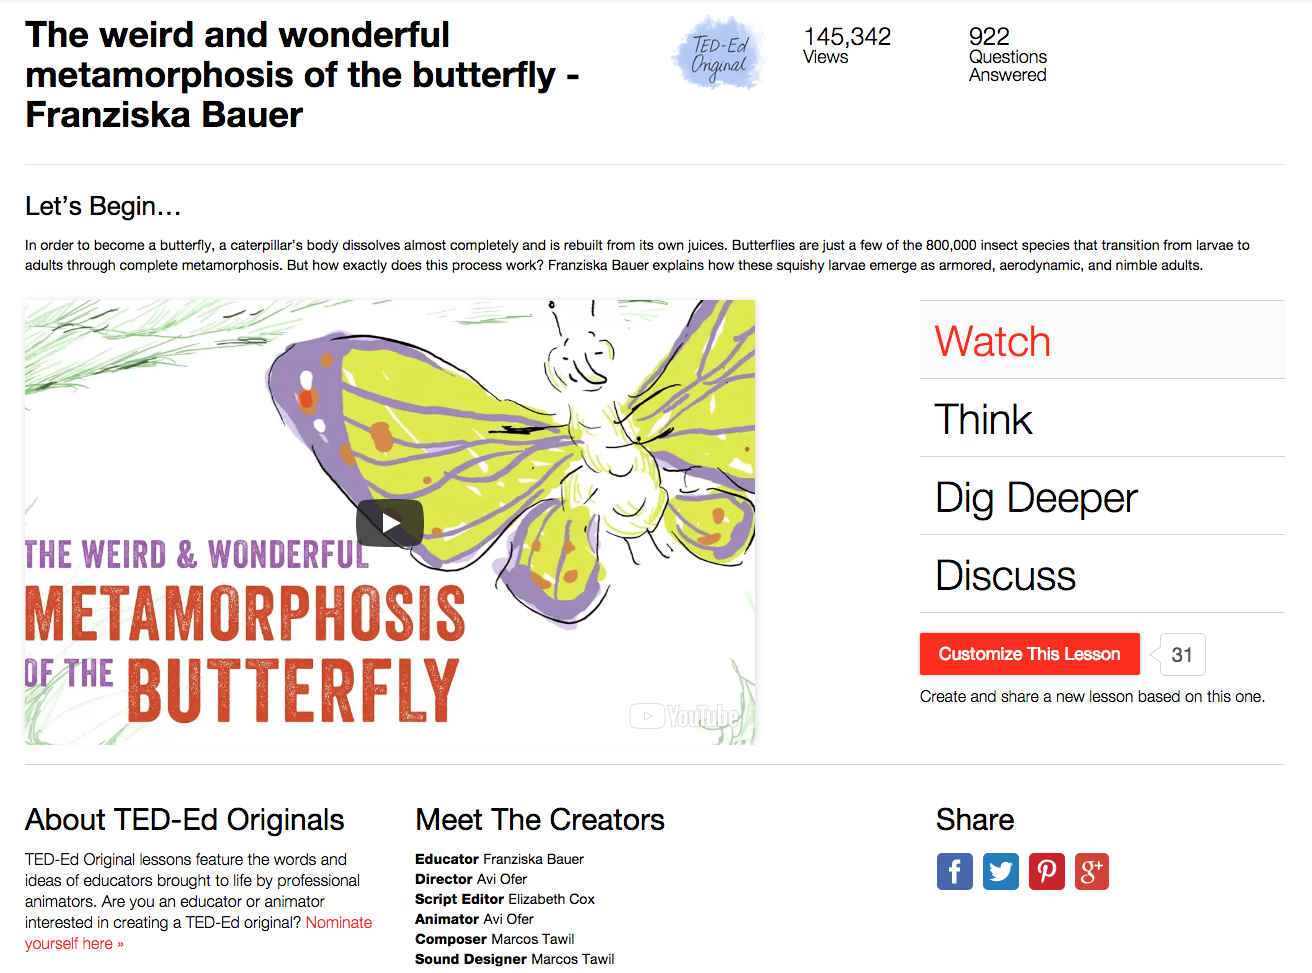 The Weird and Wonderful Metamorphosis of the Butterfly Video